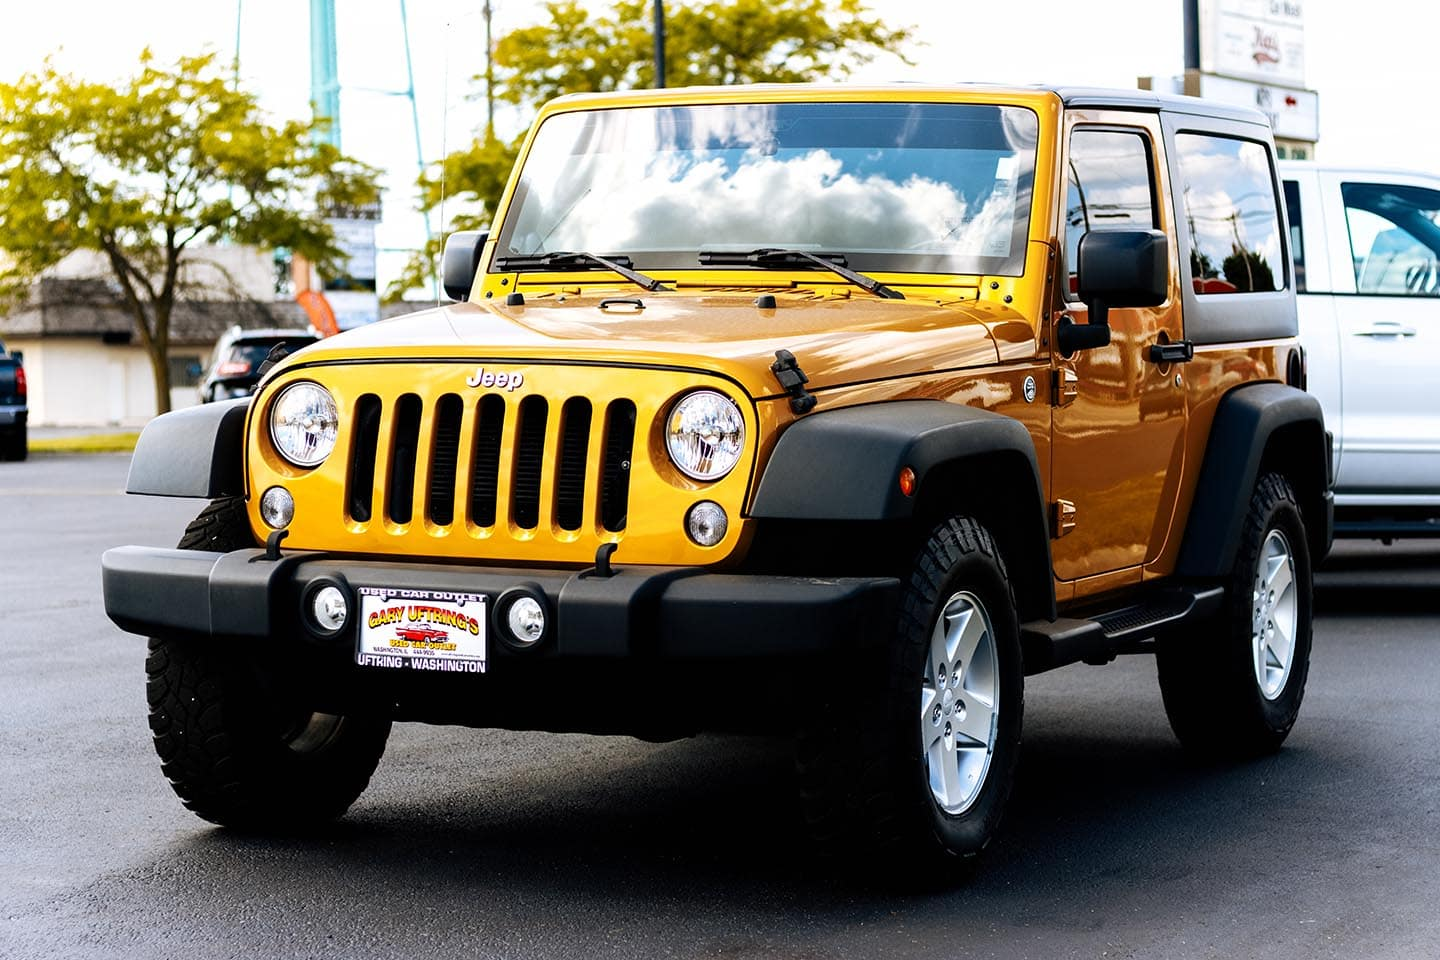 Used Jeep at Gary Uftring's Used Car Outlet